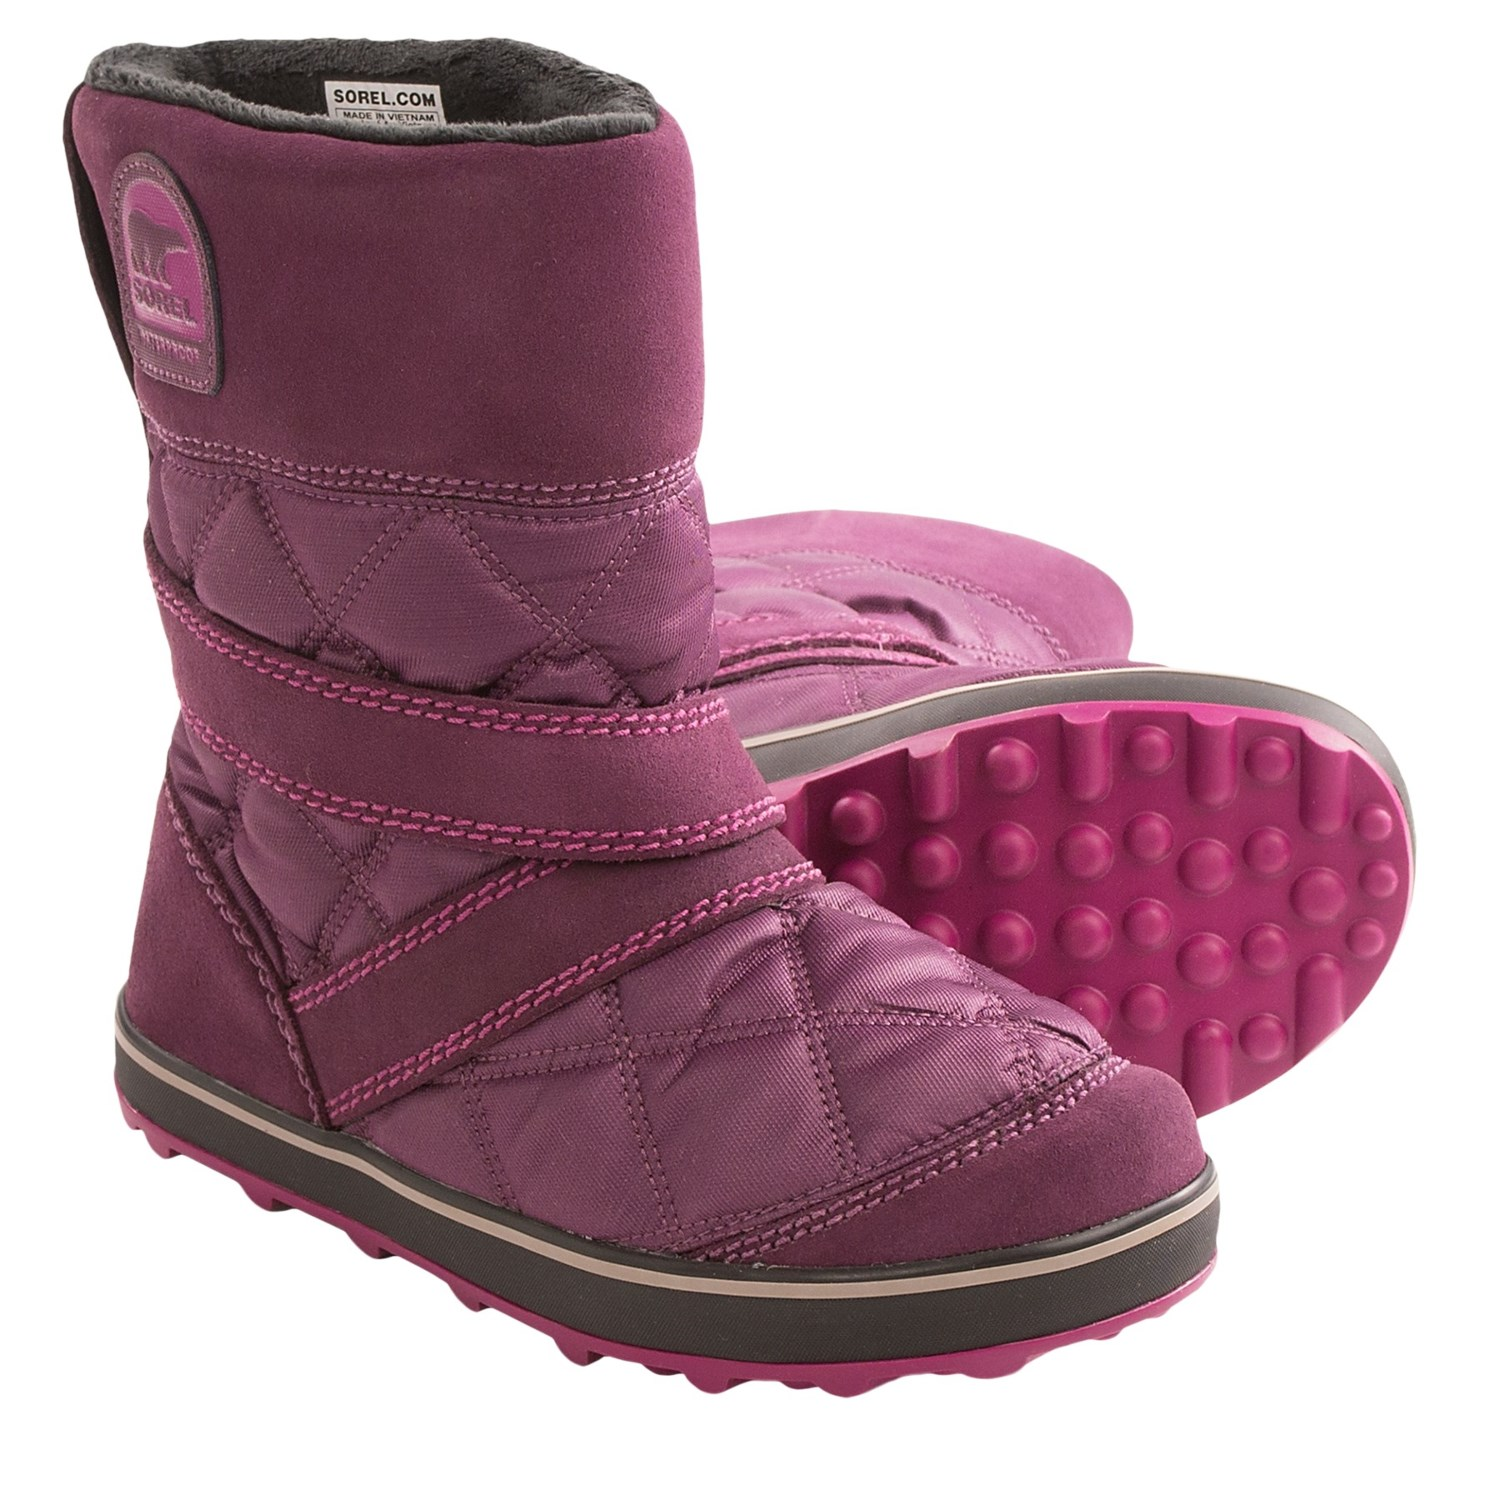 Womens Size 12 Sorel Winter Boots | Homewood Mountain Ski Resort